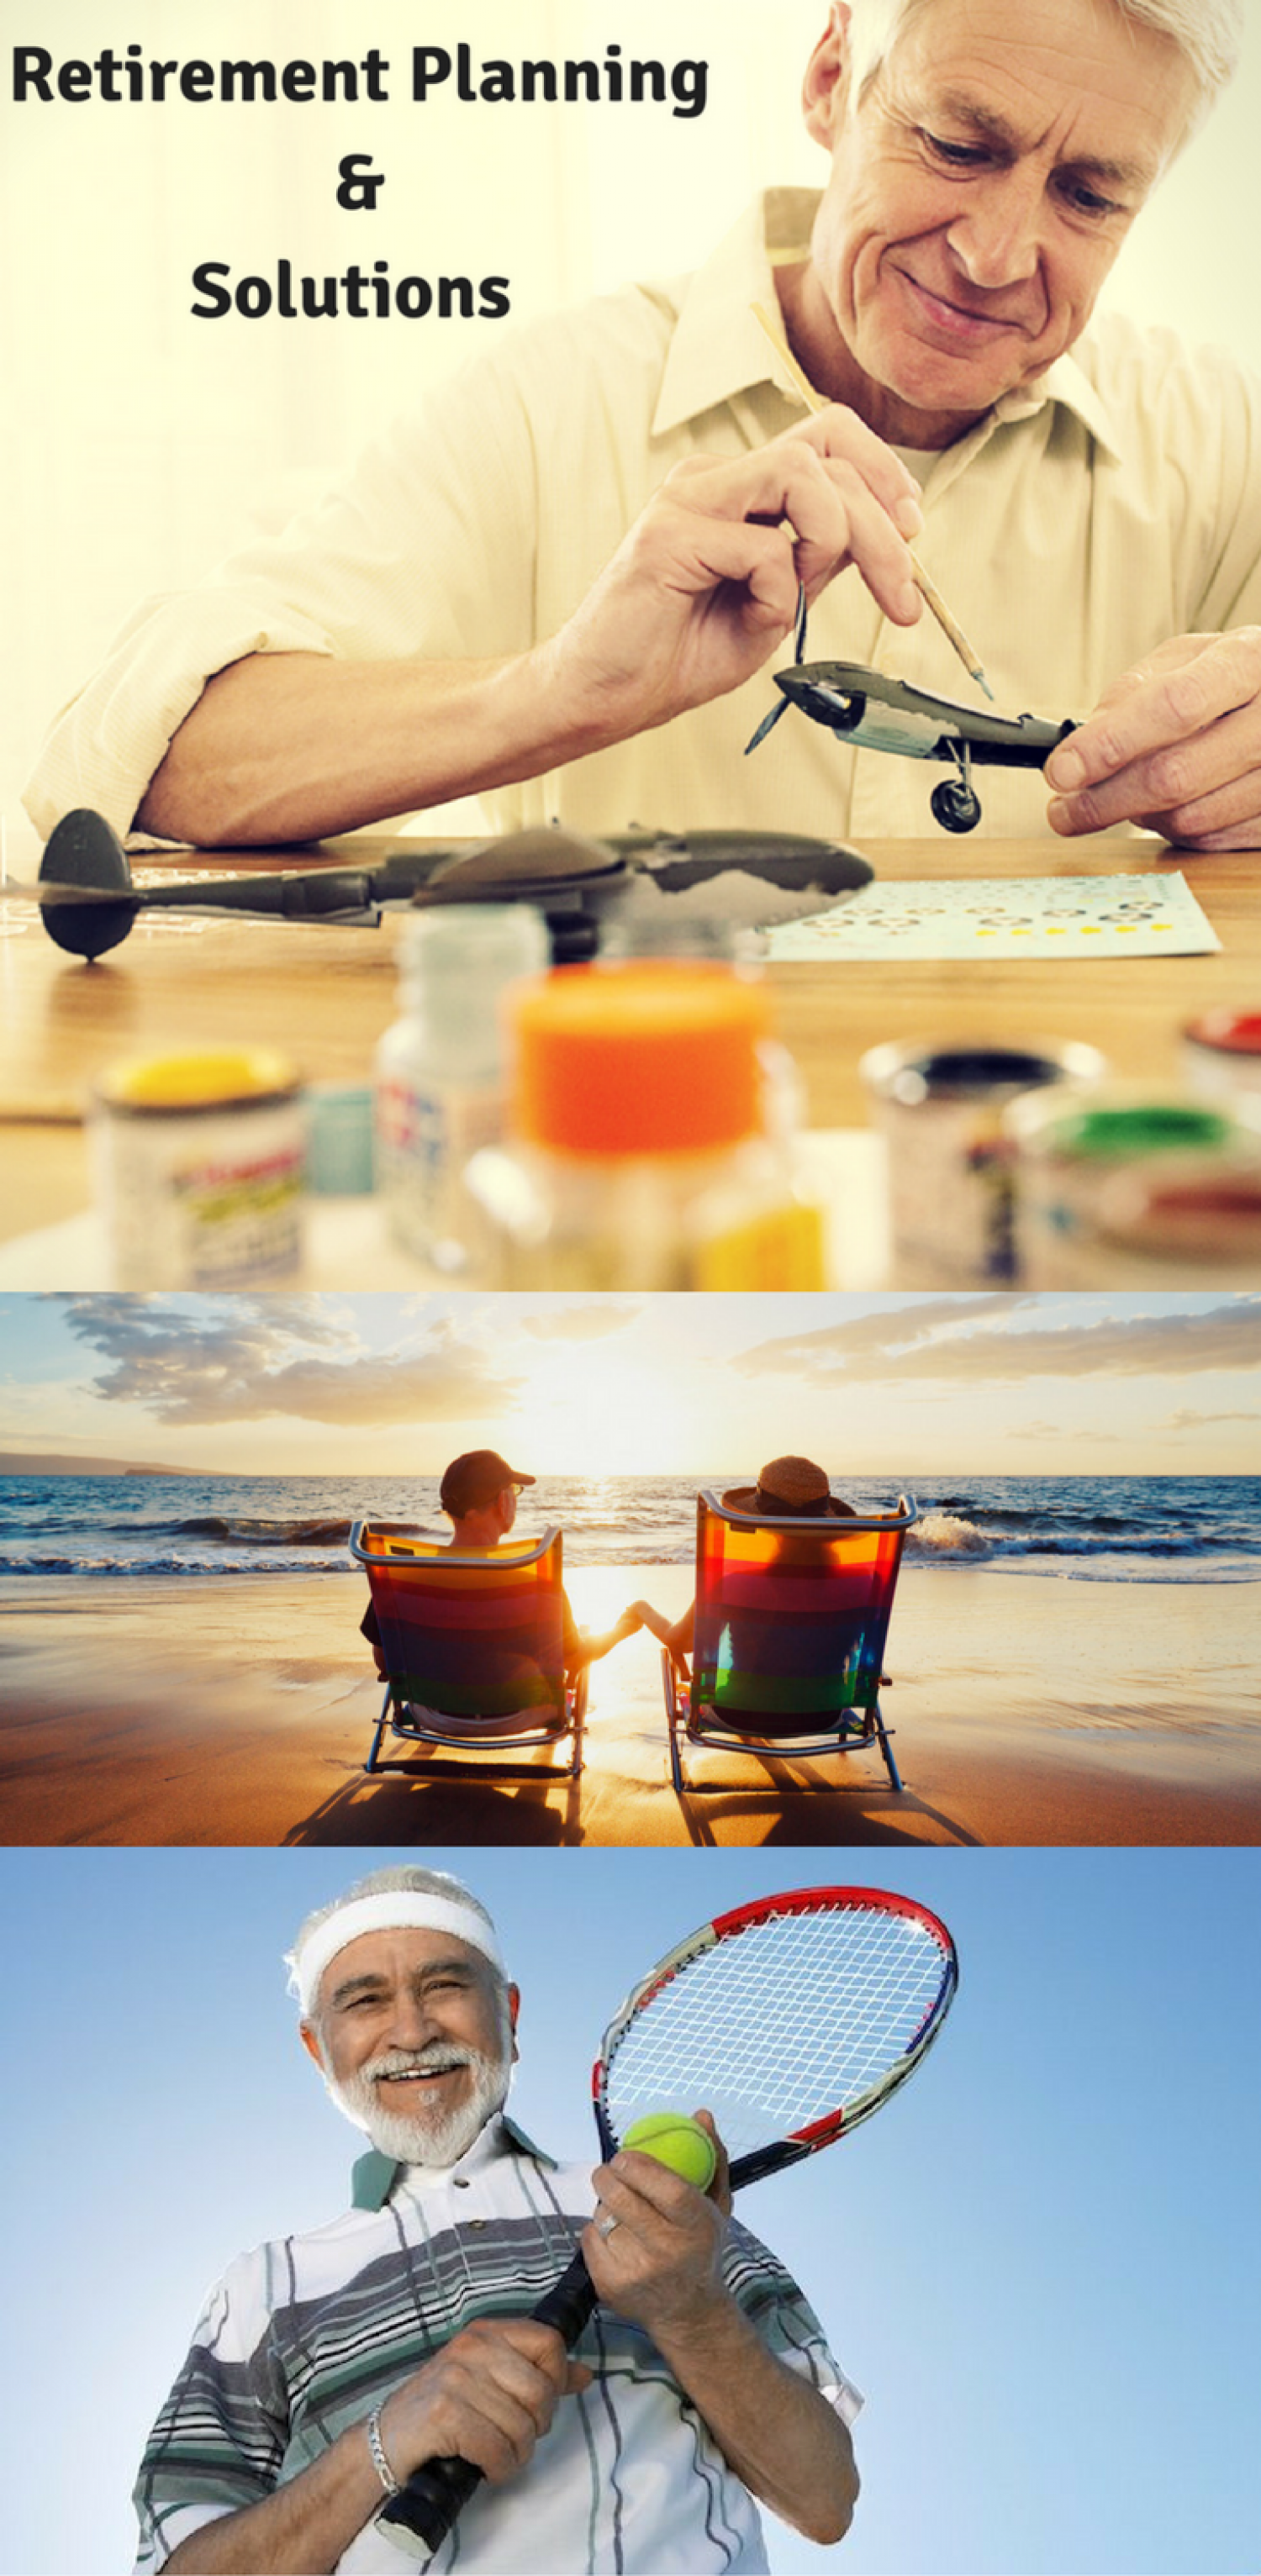 Retirement Planning | Retirement Solutions - Life Insurance Infographic